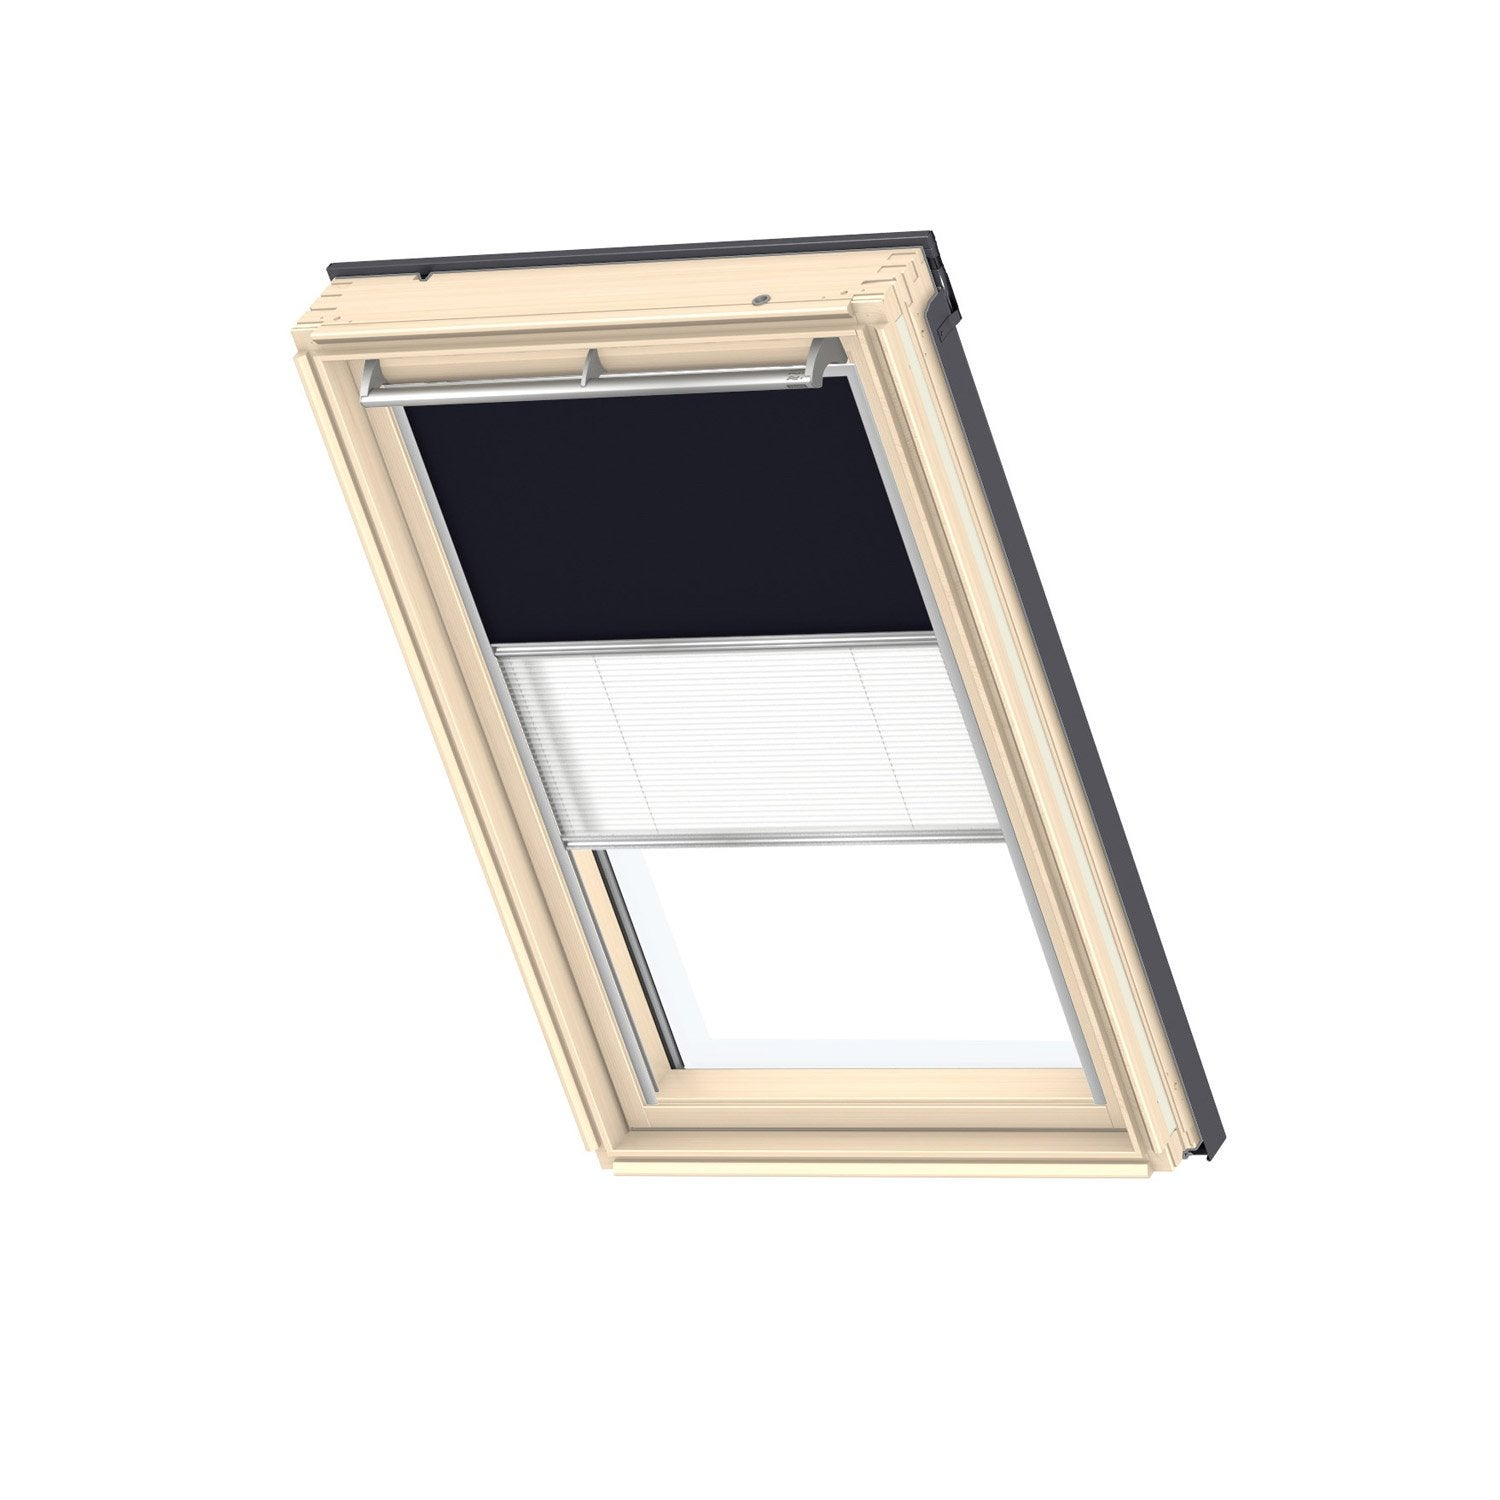 store velux ggl s06 store velux ggl 606 velux ggl 606 sur enperdresonlapin frais rideau. Black Bedroom Furniture Sets. Home Design Ideas